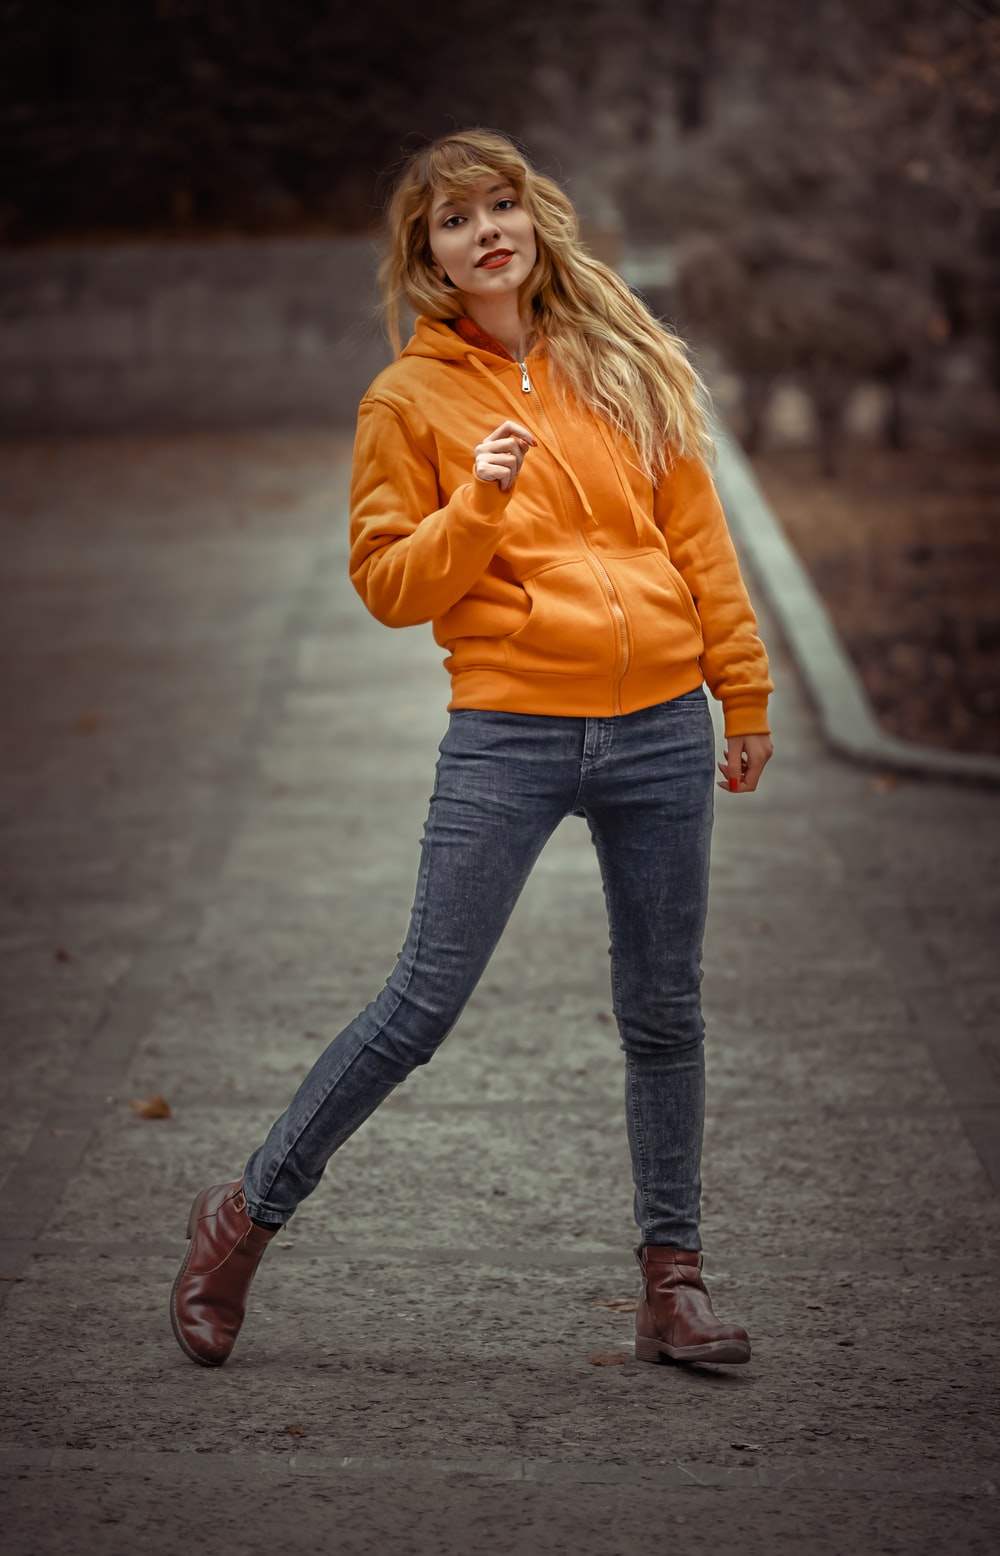 woman in orange jacket and blue jeans standing outdoors